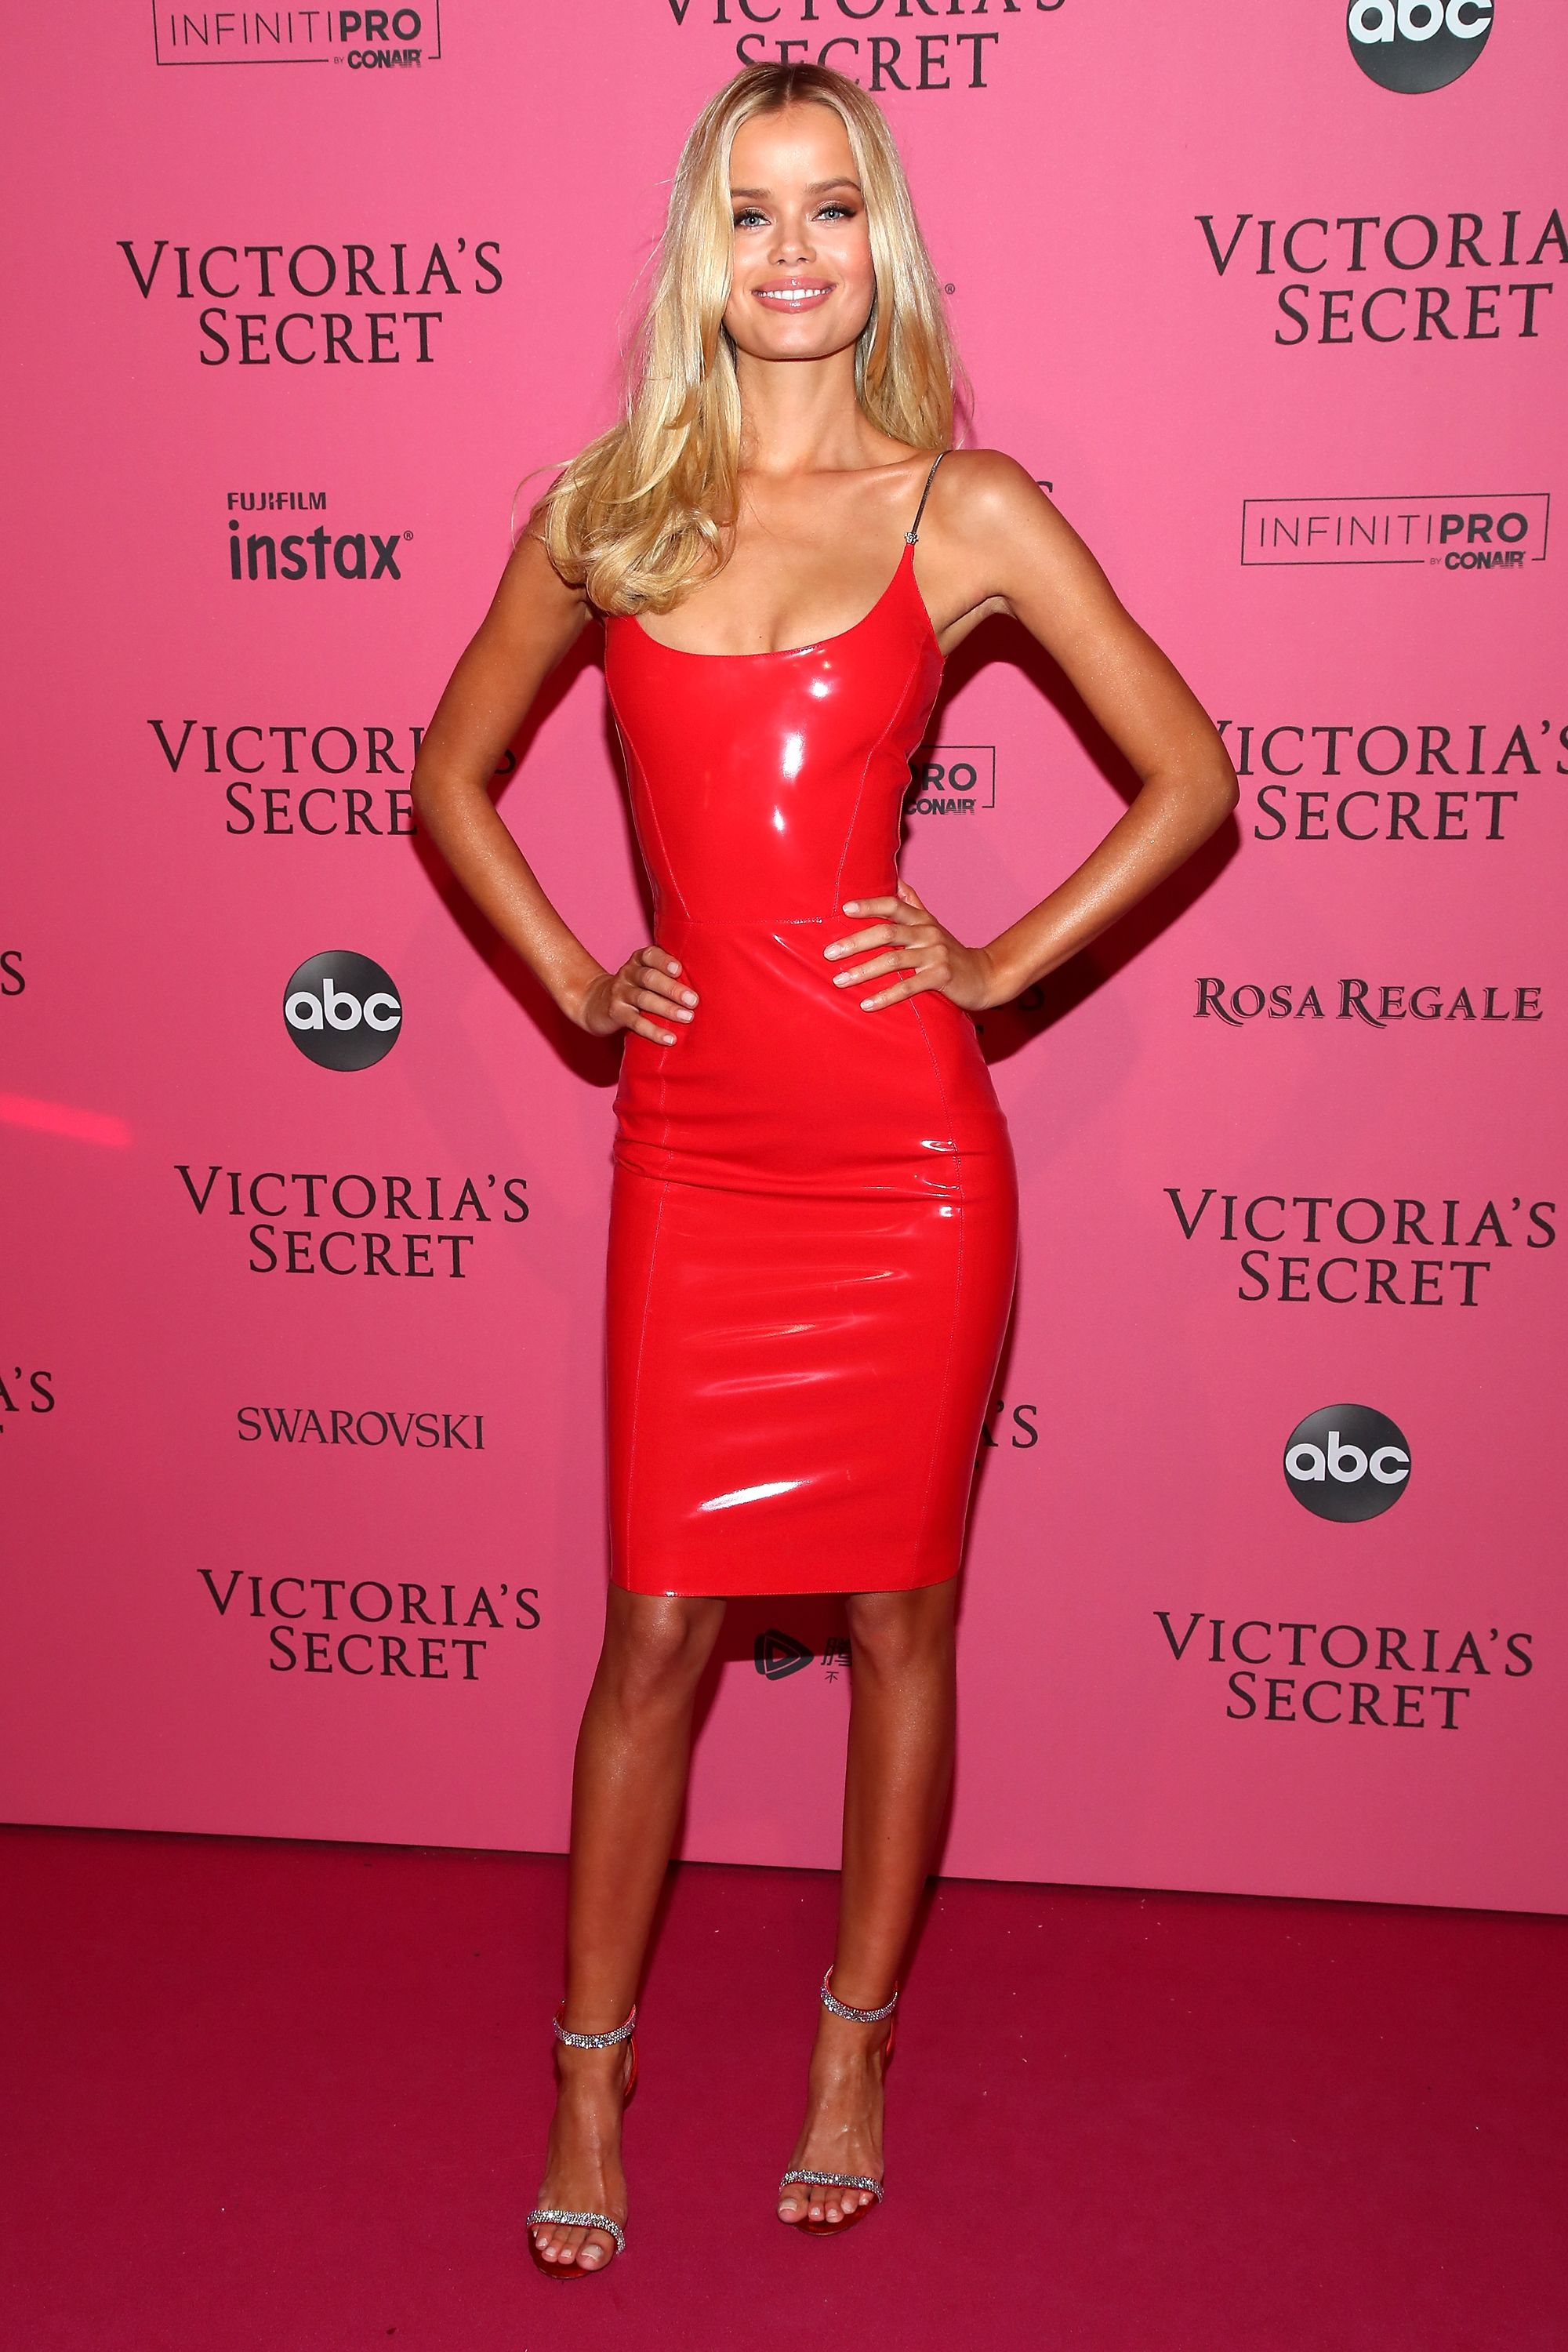 Victoria Secret pink carpet